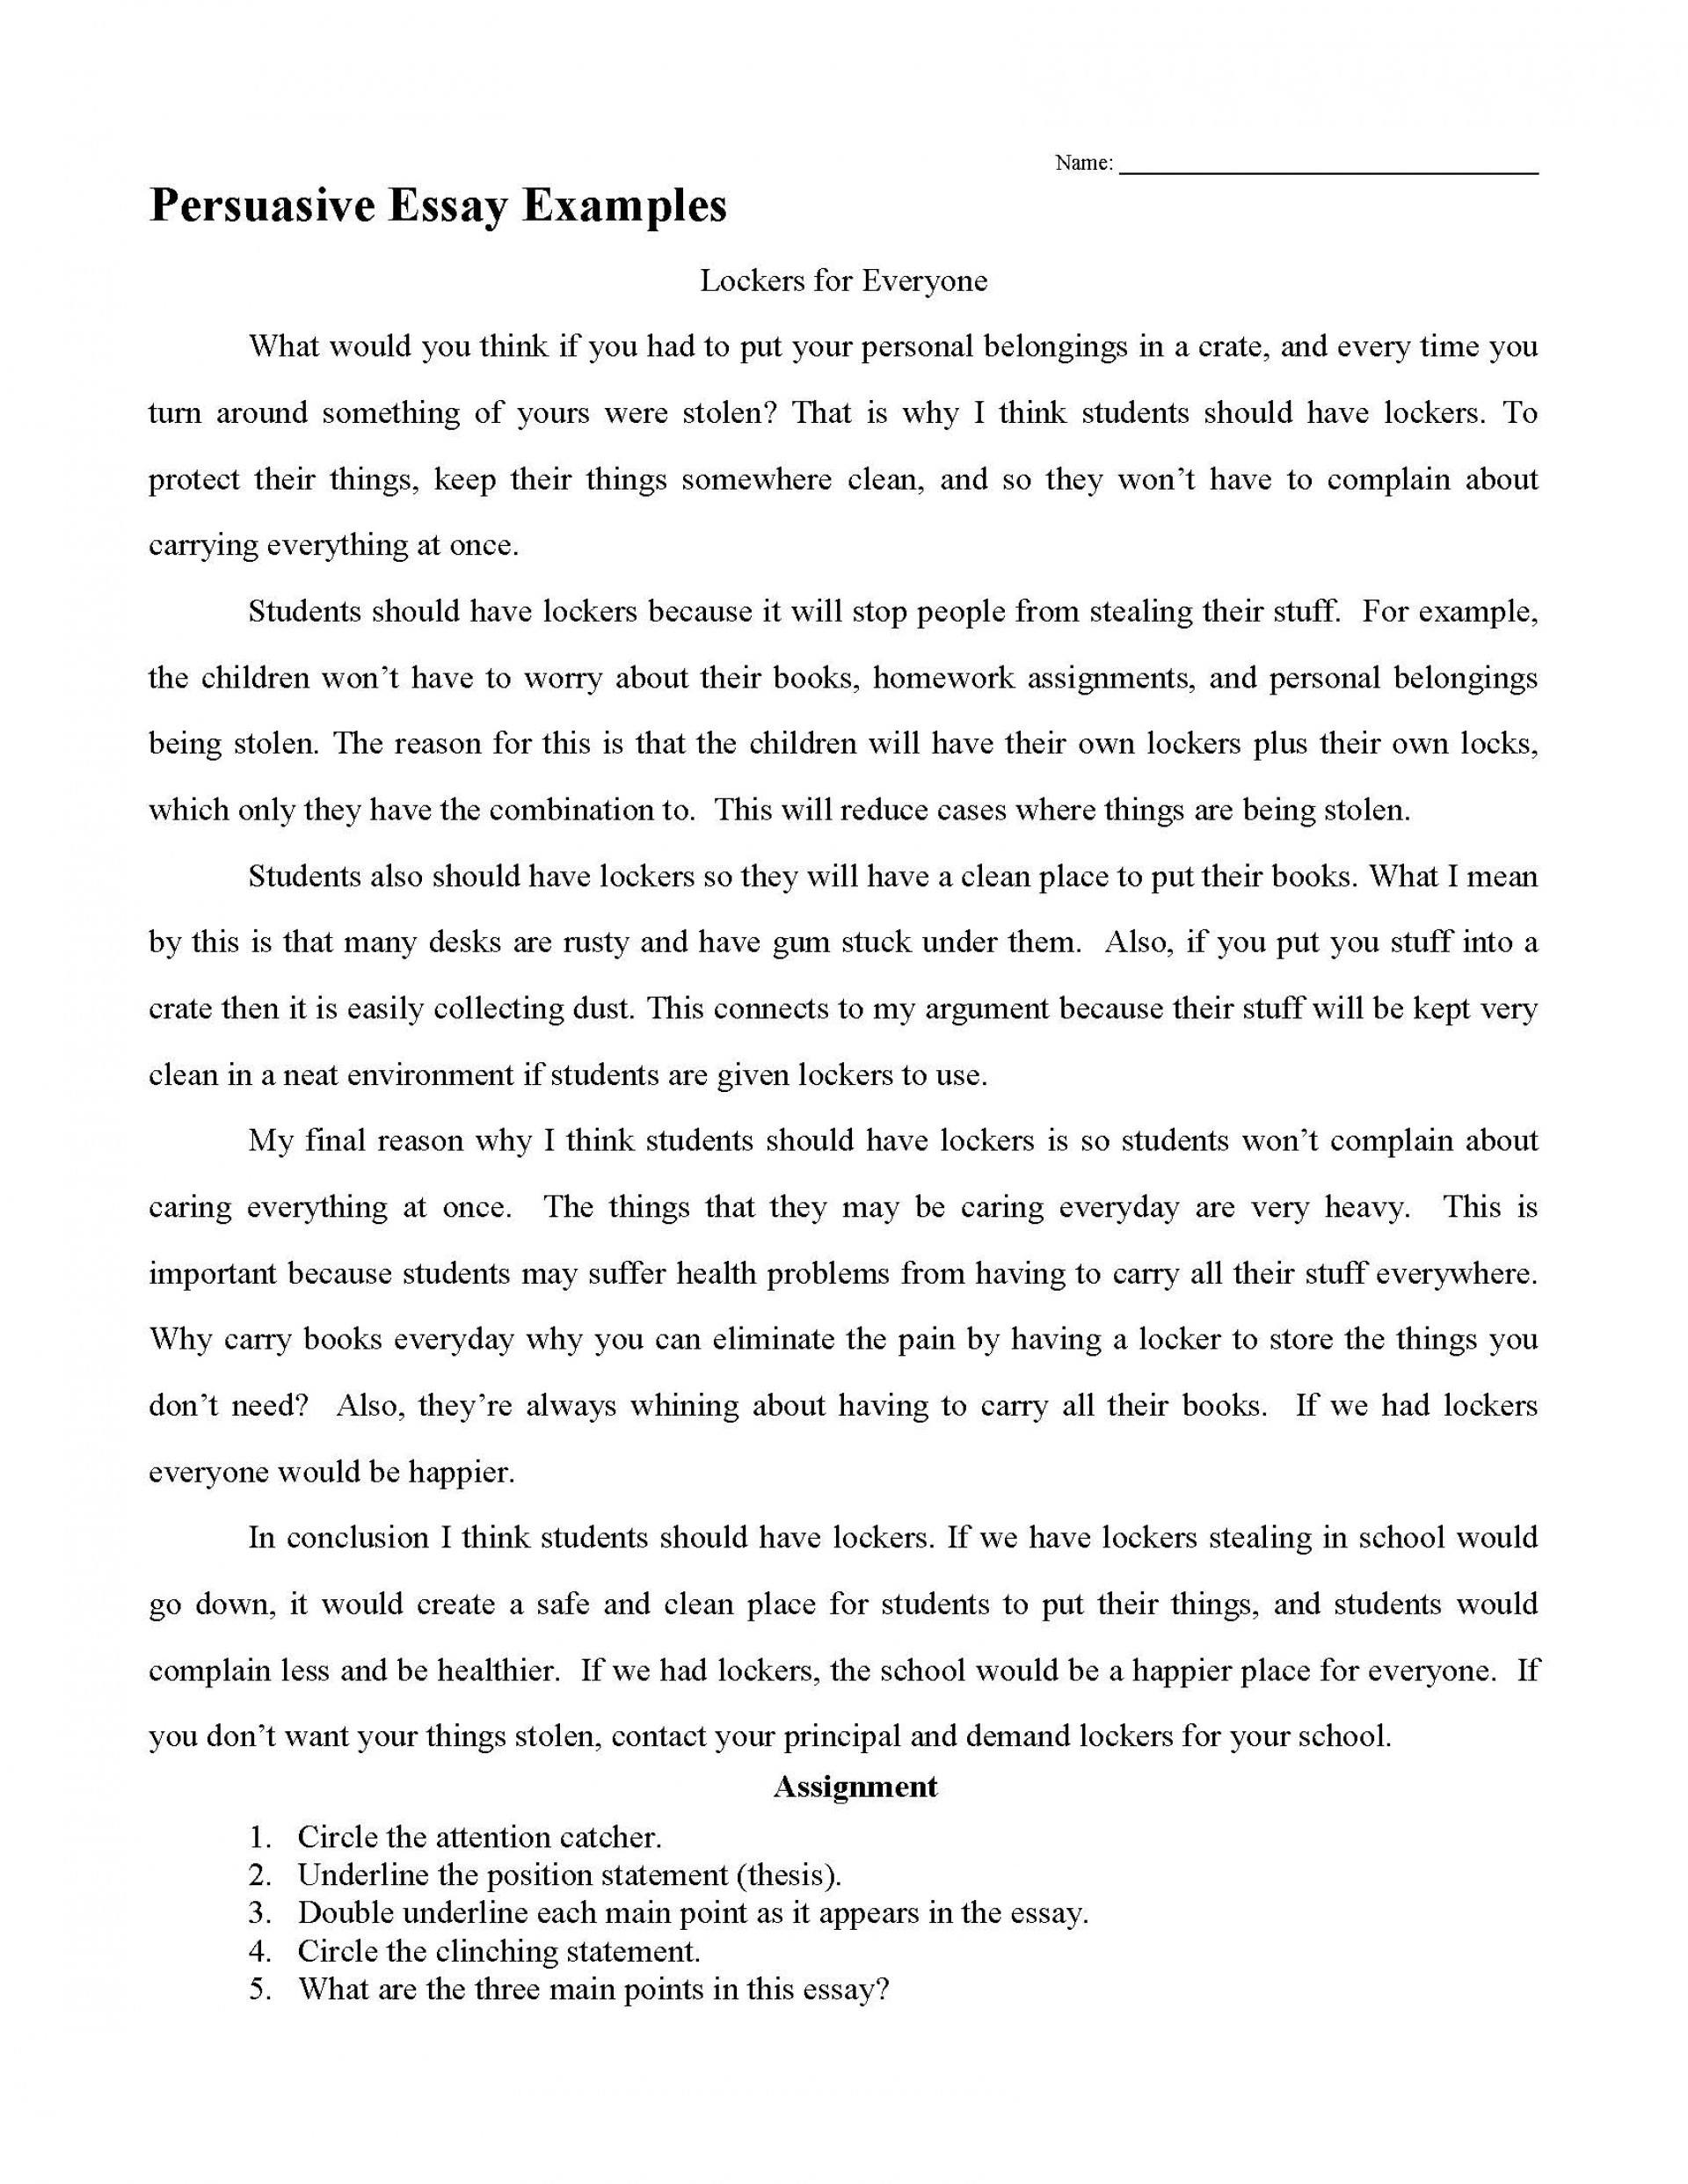 014 Criminal Justice Research Paper Topics Persuasive Essay Examples Fearsome 100 1920